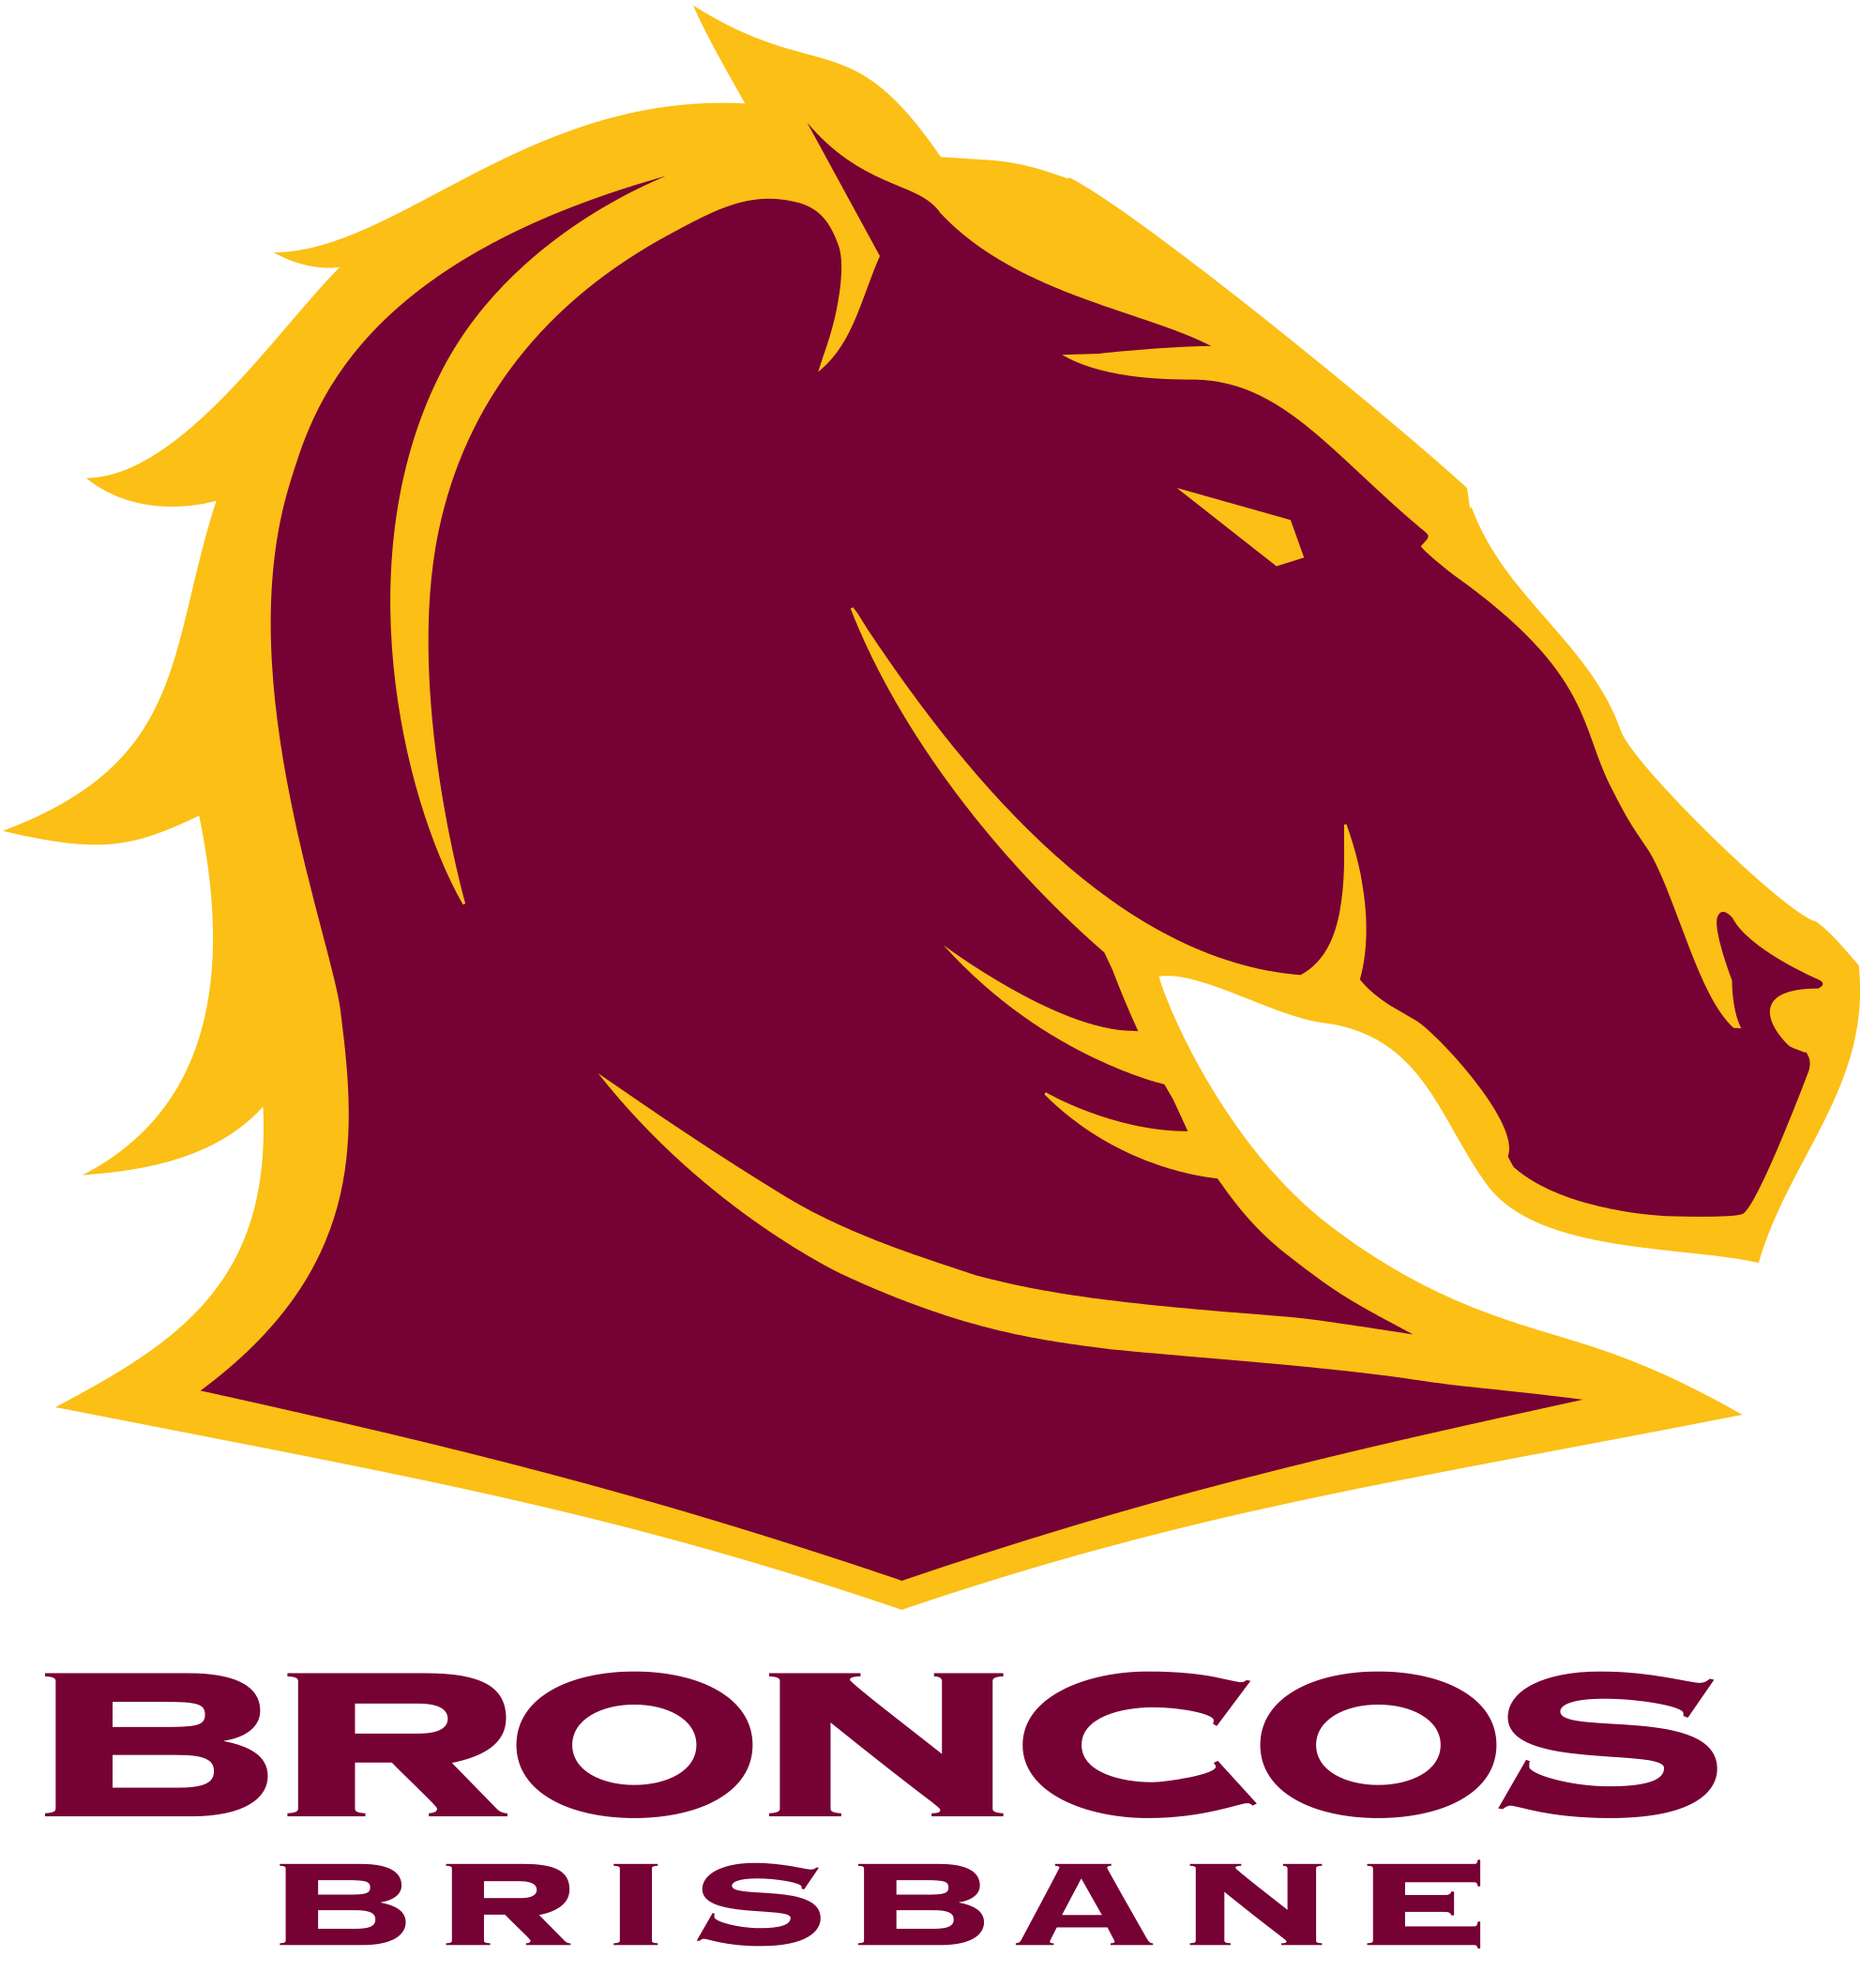 Brisbane Broncos (National Rugby League of Australia